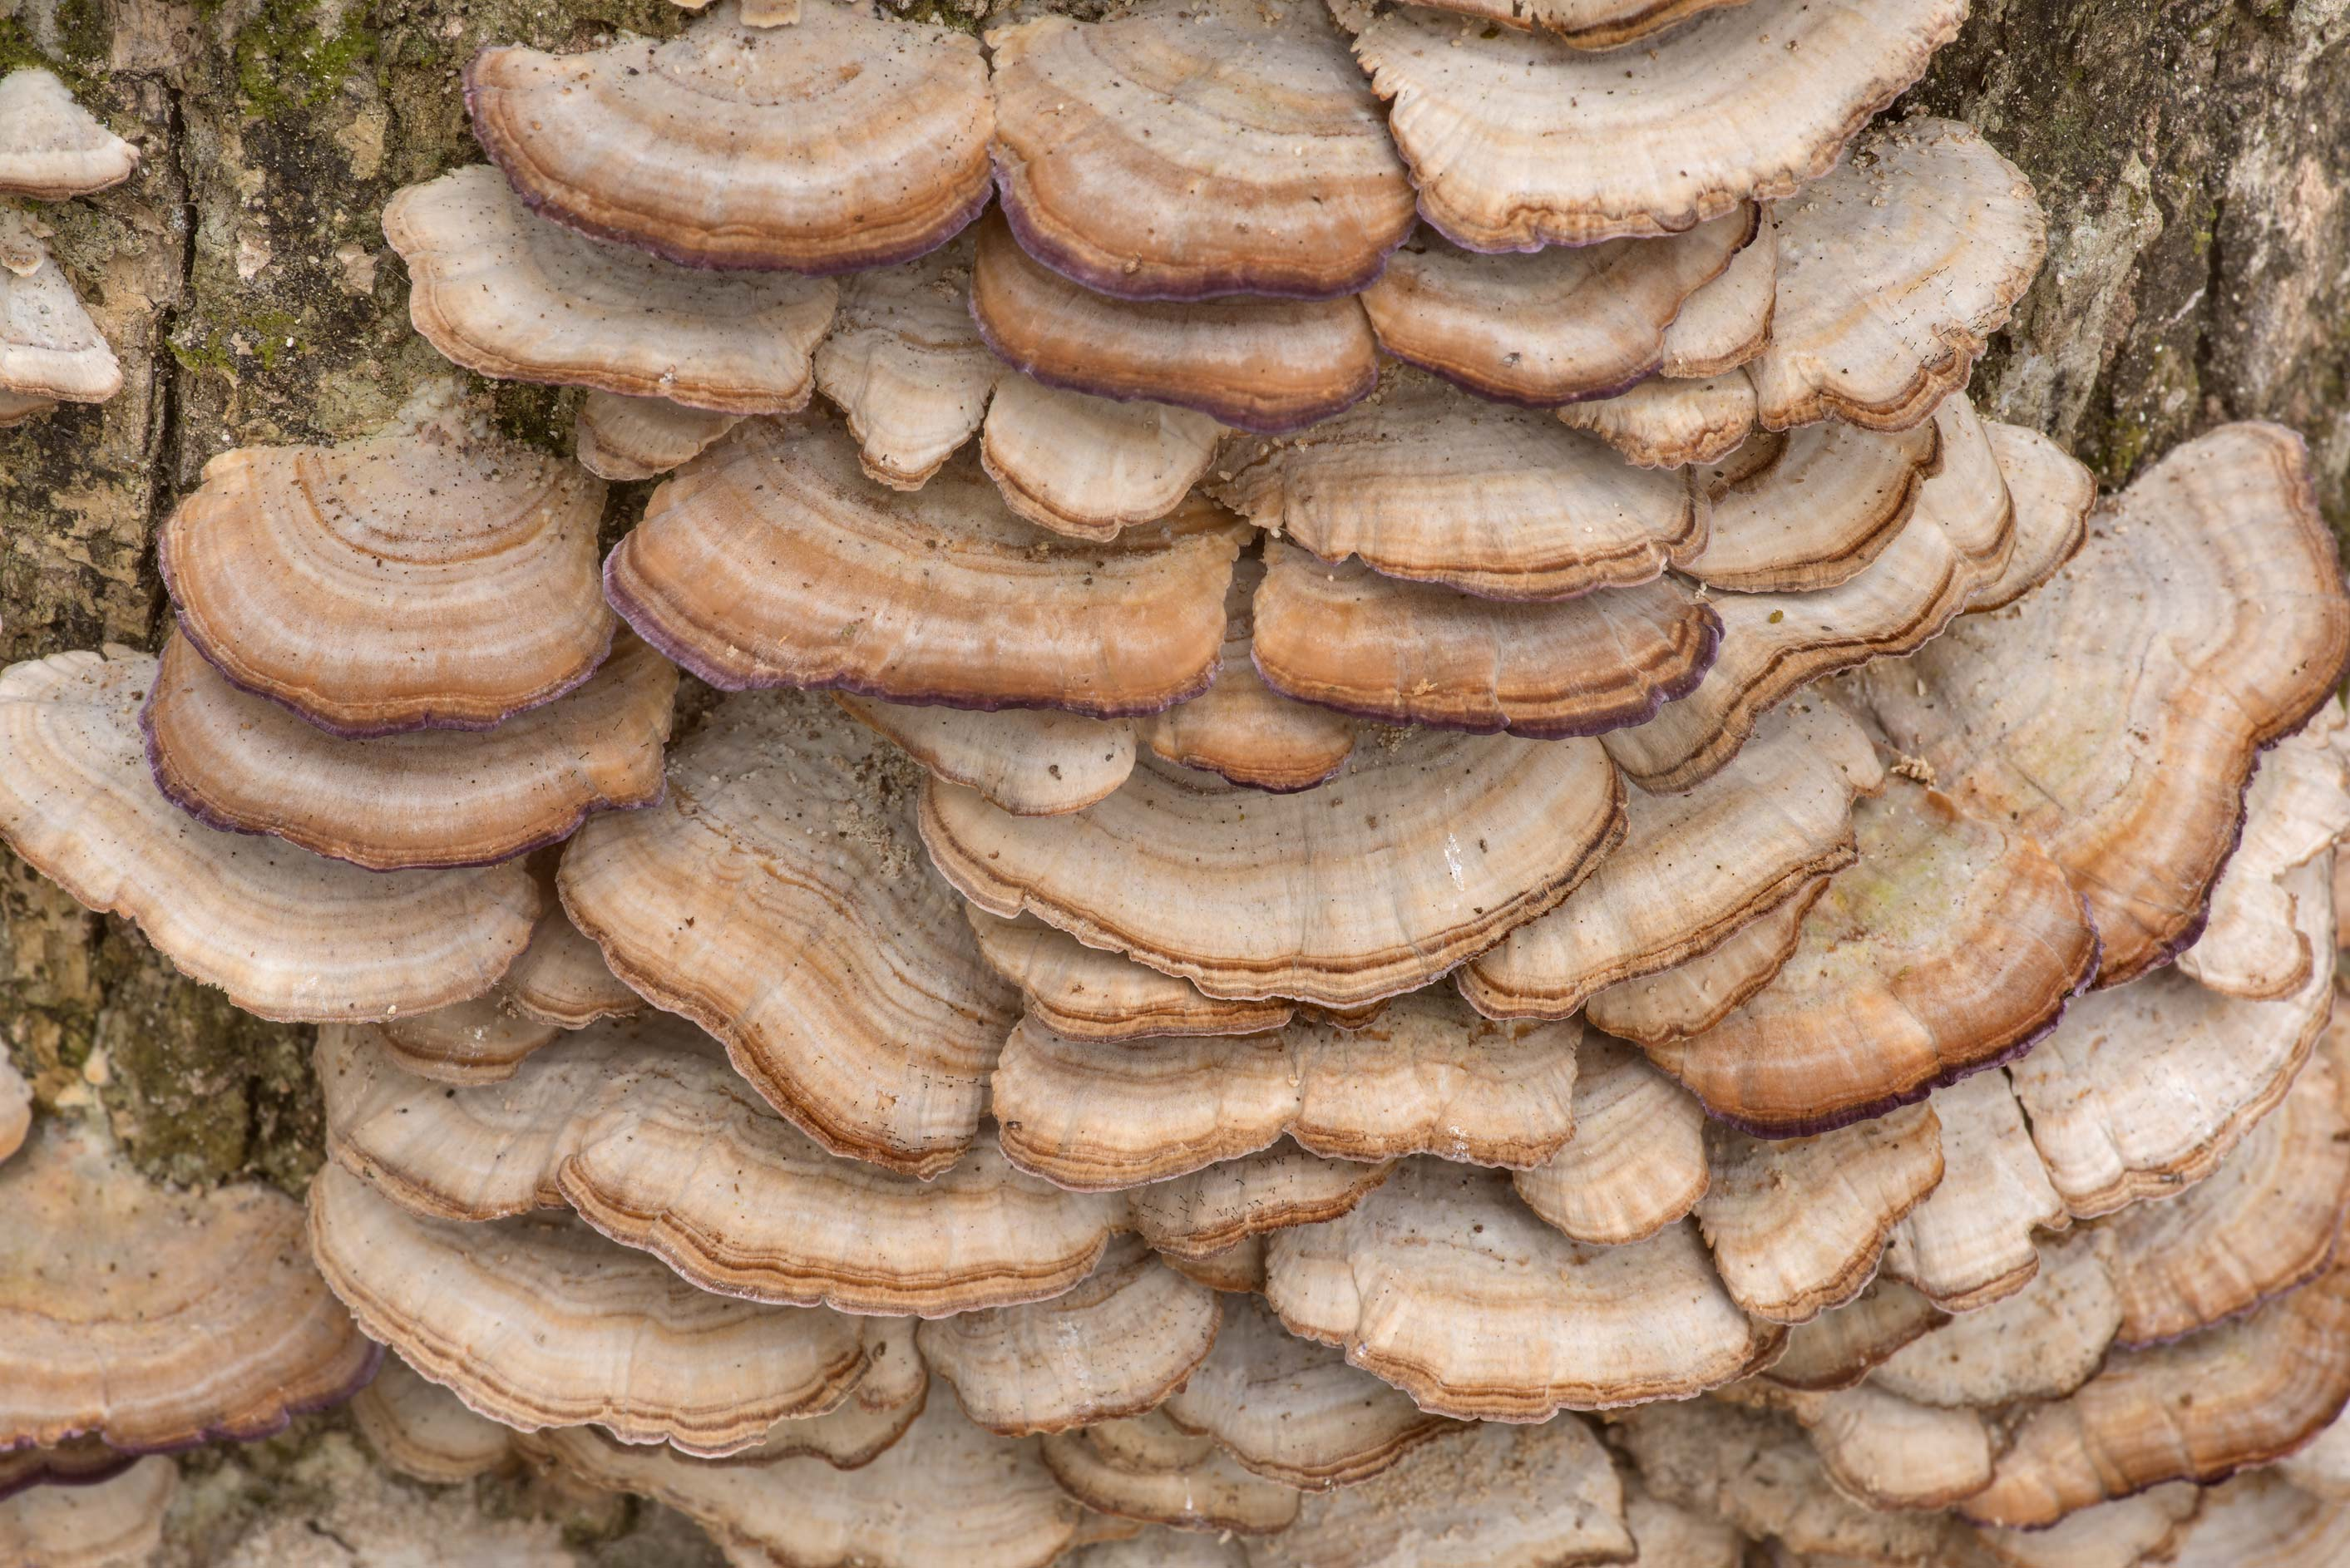 Purple toothed polypore mushrooms (Trichaptum...National Forest near Huntsville. Texas